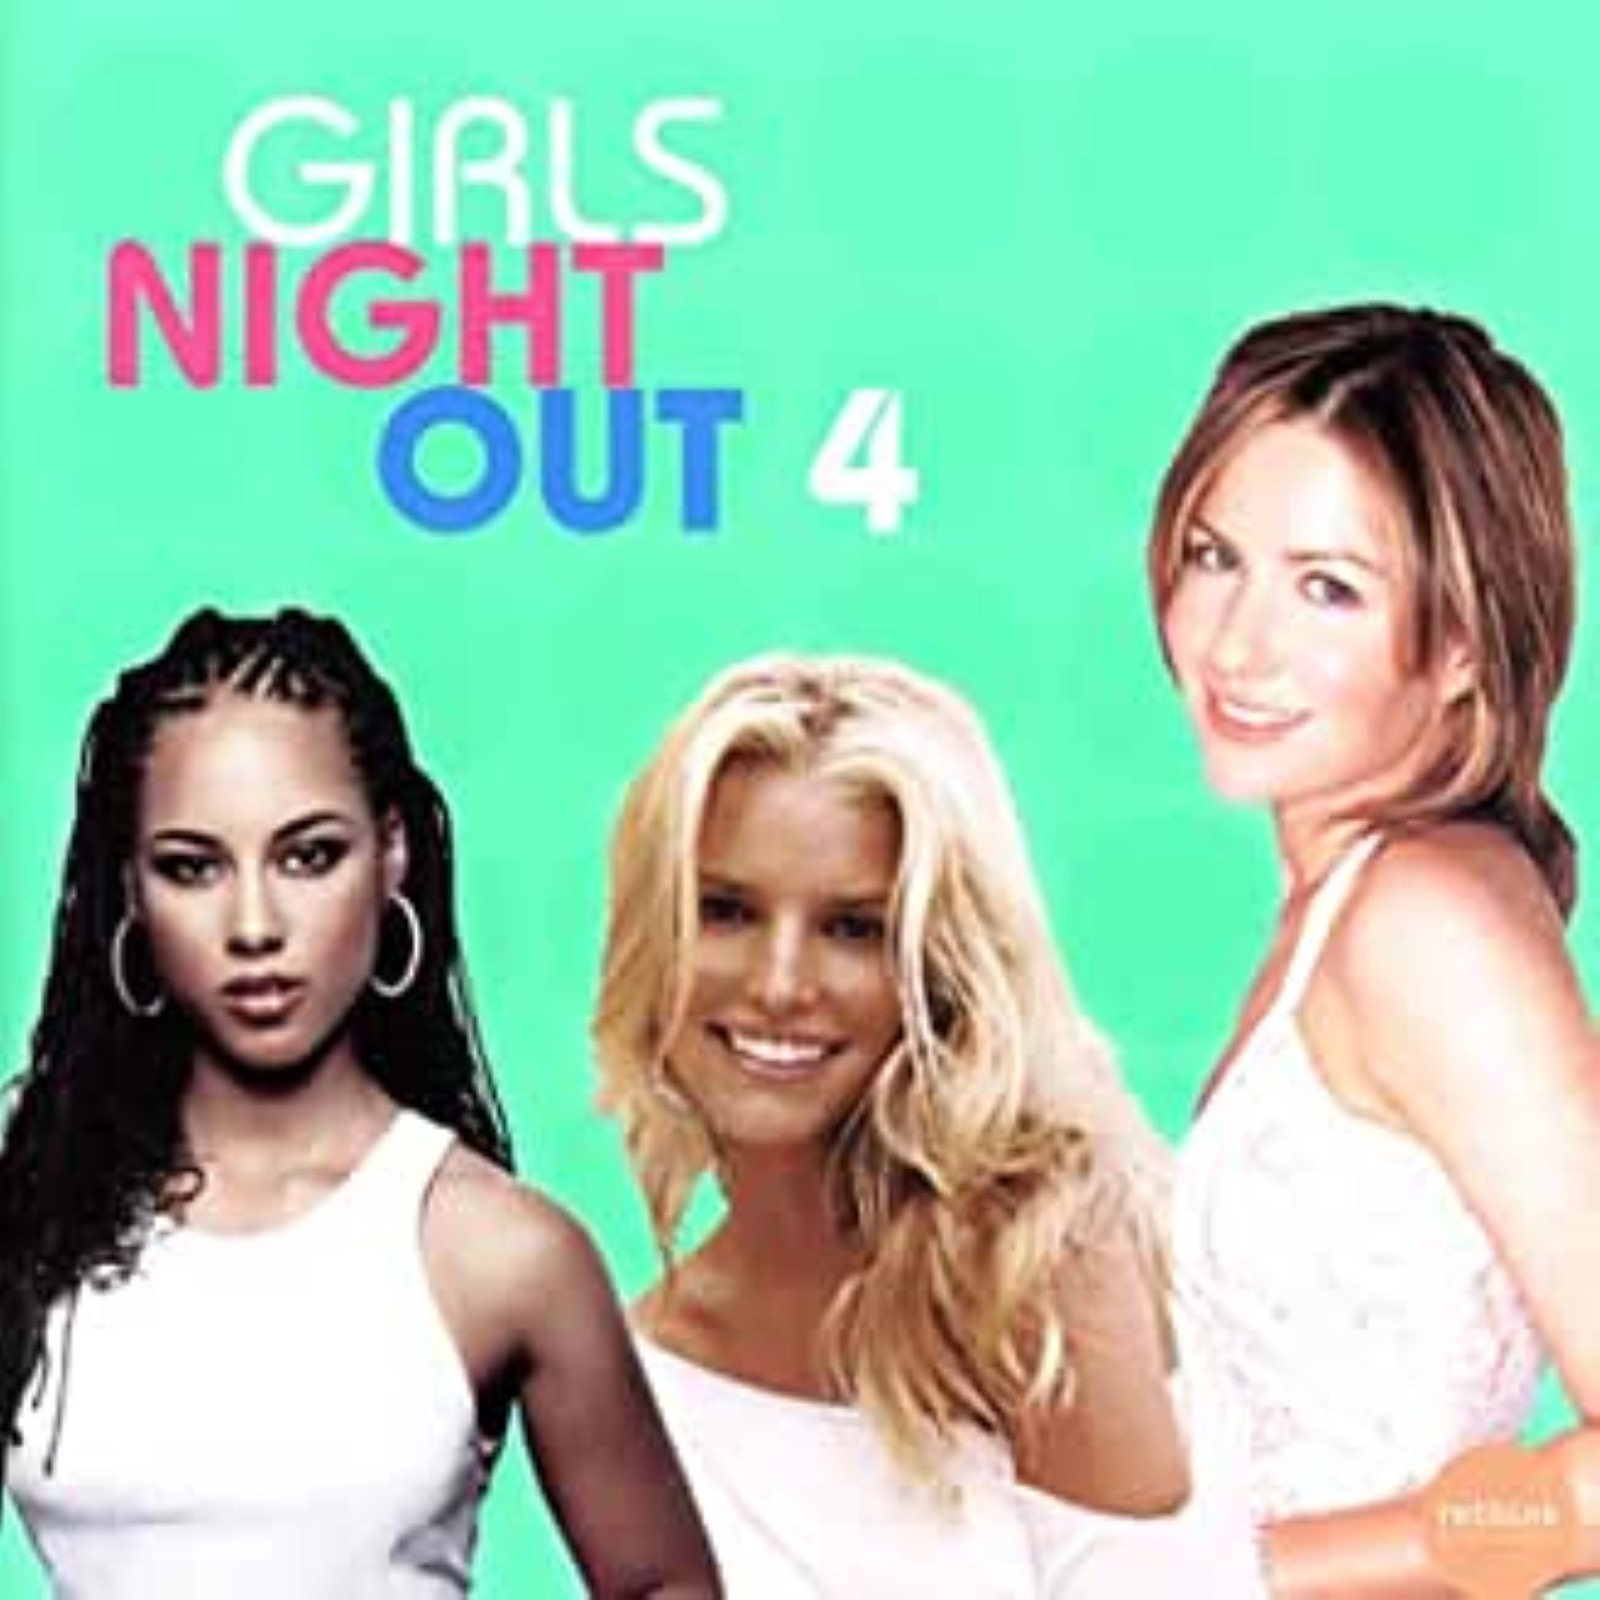 Girls Night Out 4 Girls Night Out Cd